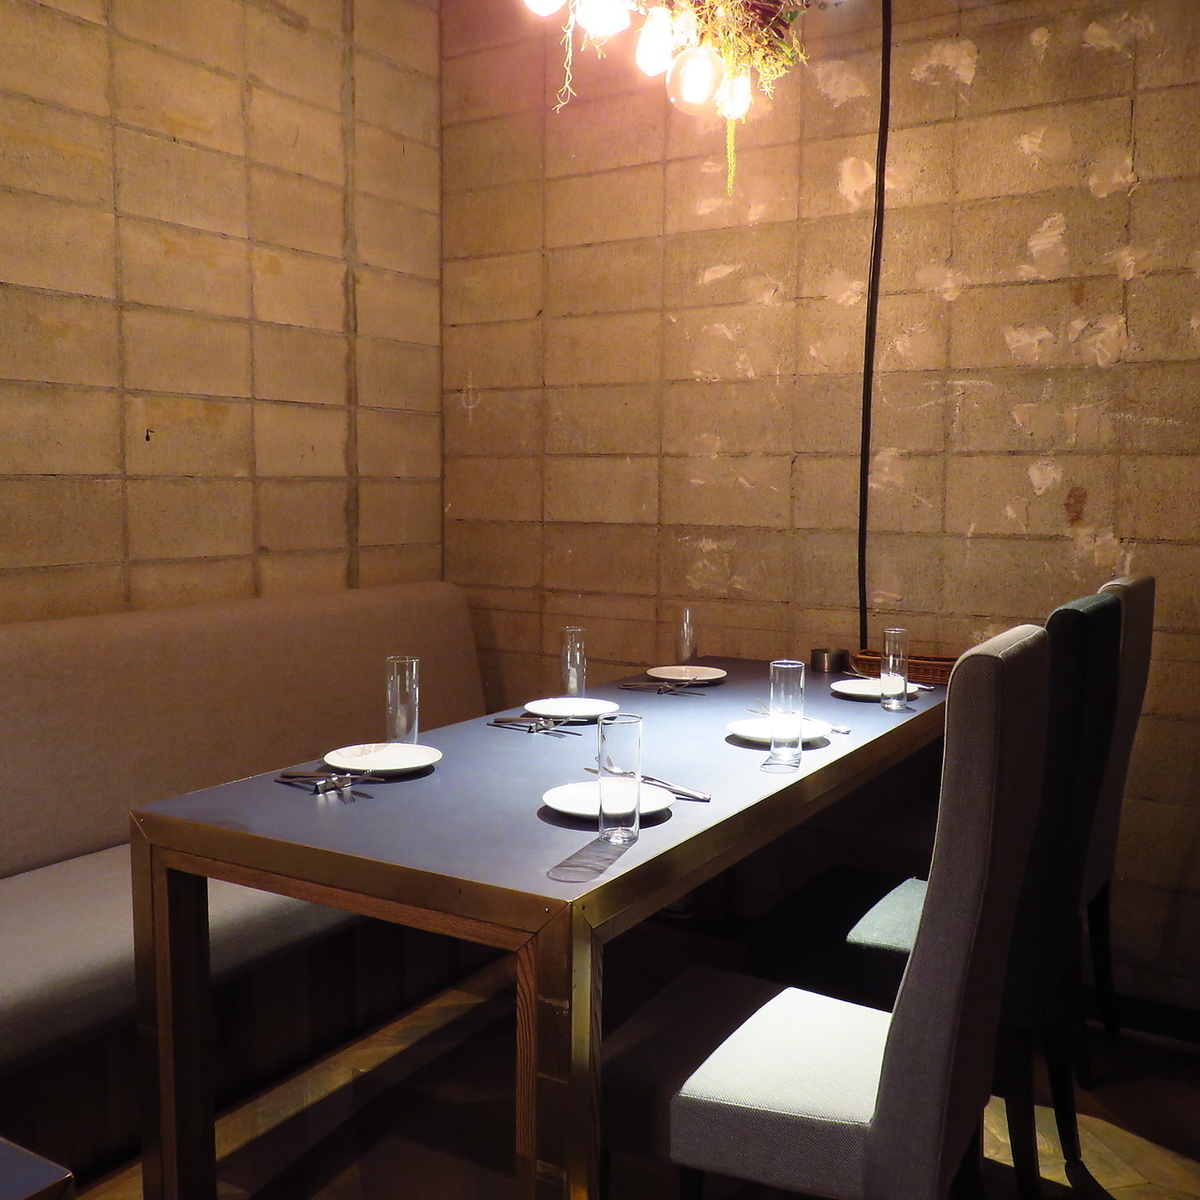 The table seats in the back of the store can also be used as semi-private rooms with a partition with a curtain